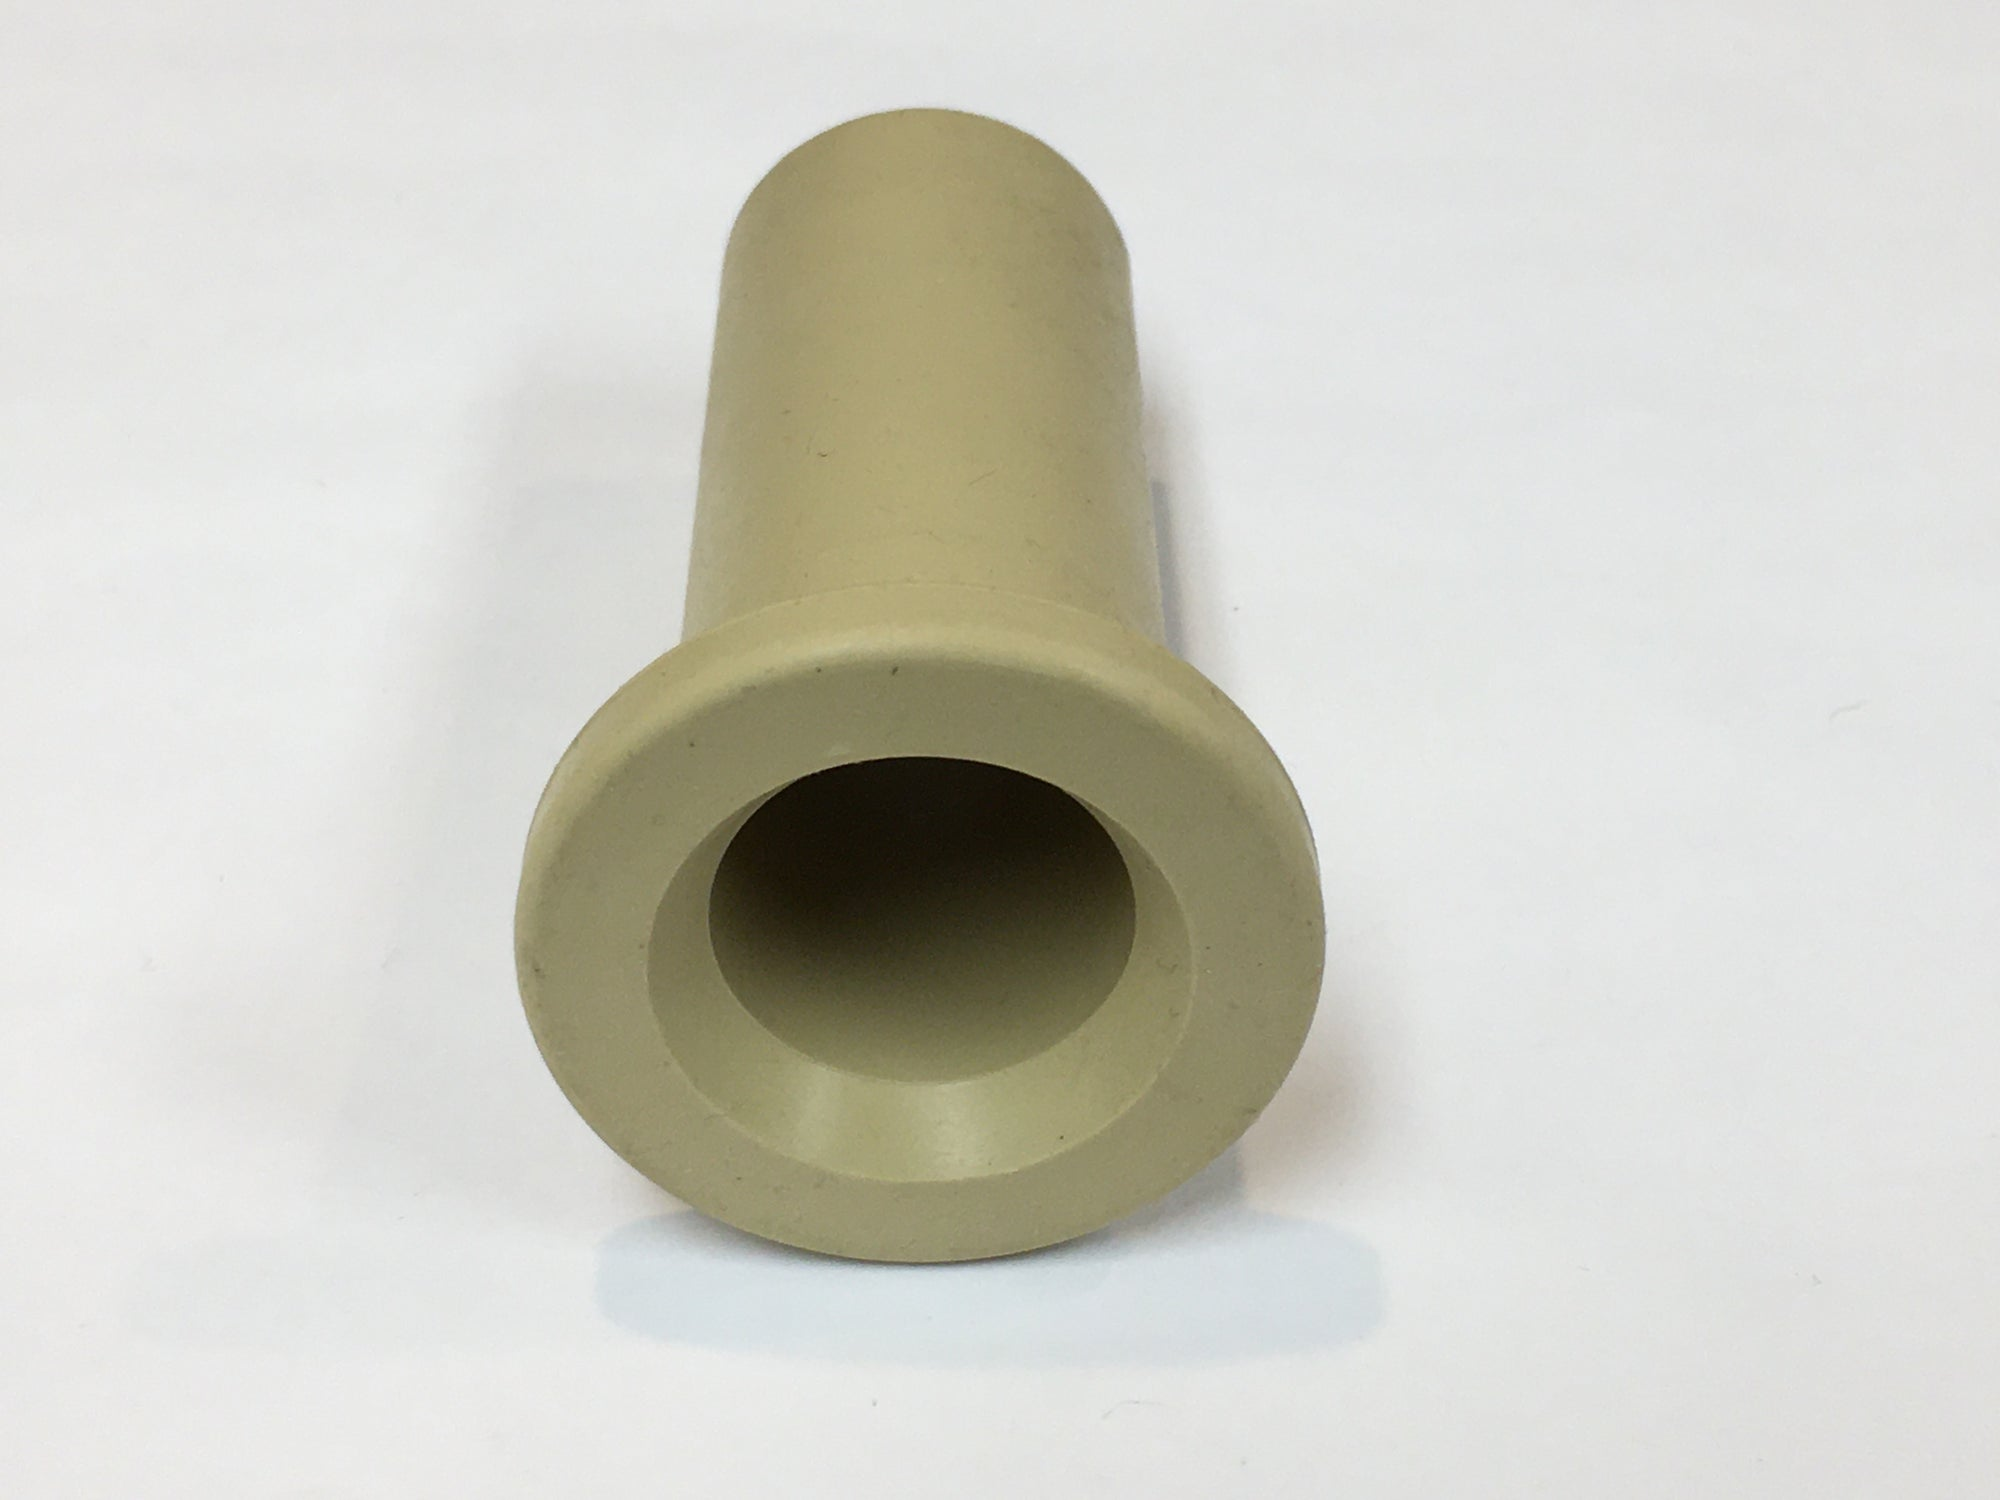 King Pin Bottom Bushing - Tan (CAMO) - shop.cmpgroup.net